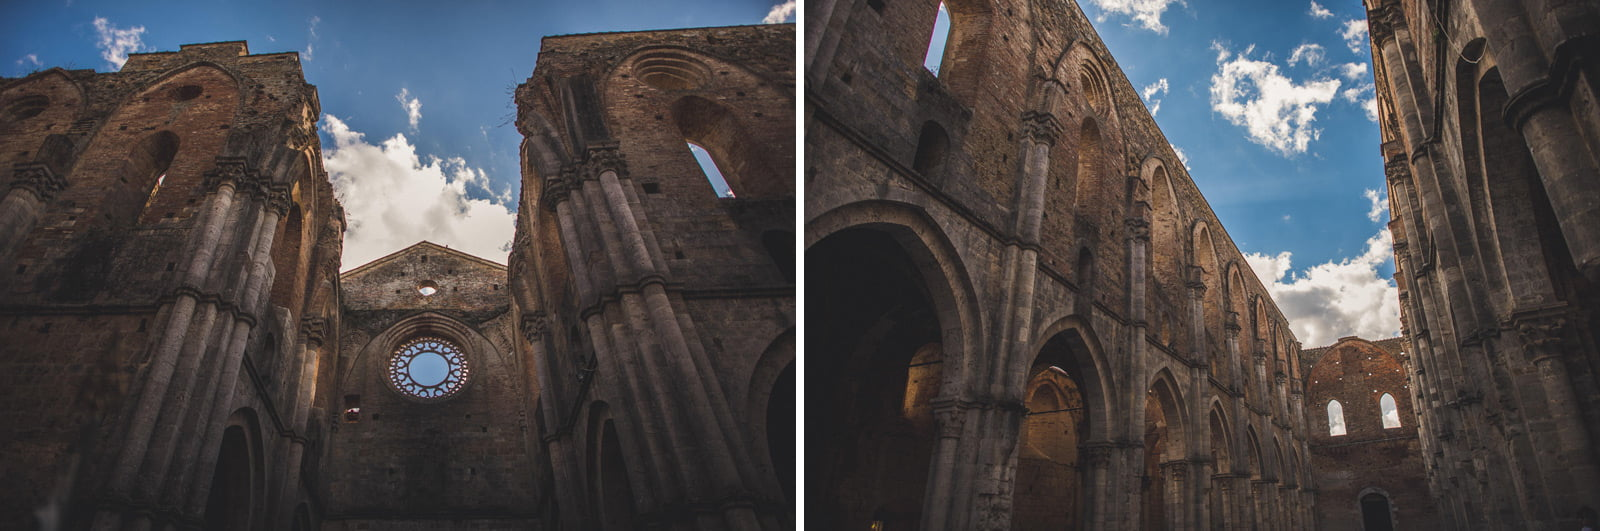 038-wedding-tuscany-san-galgano-siena-photographer